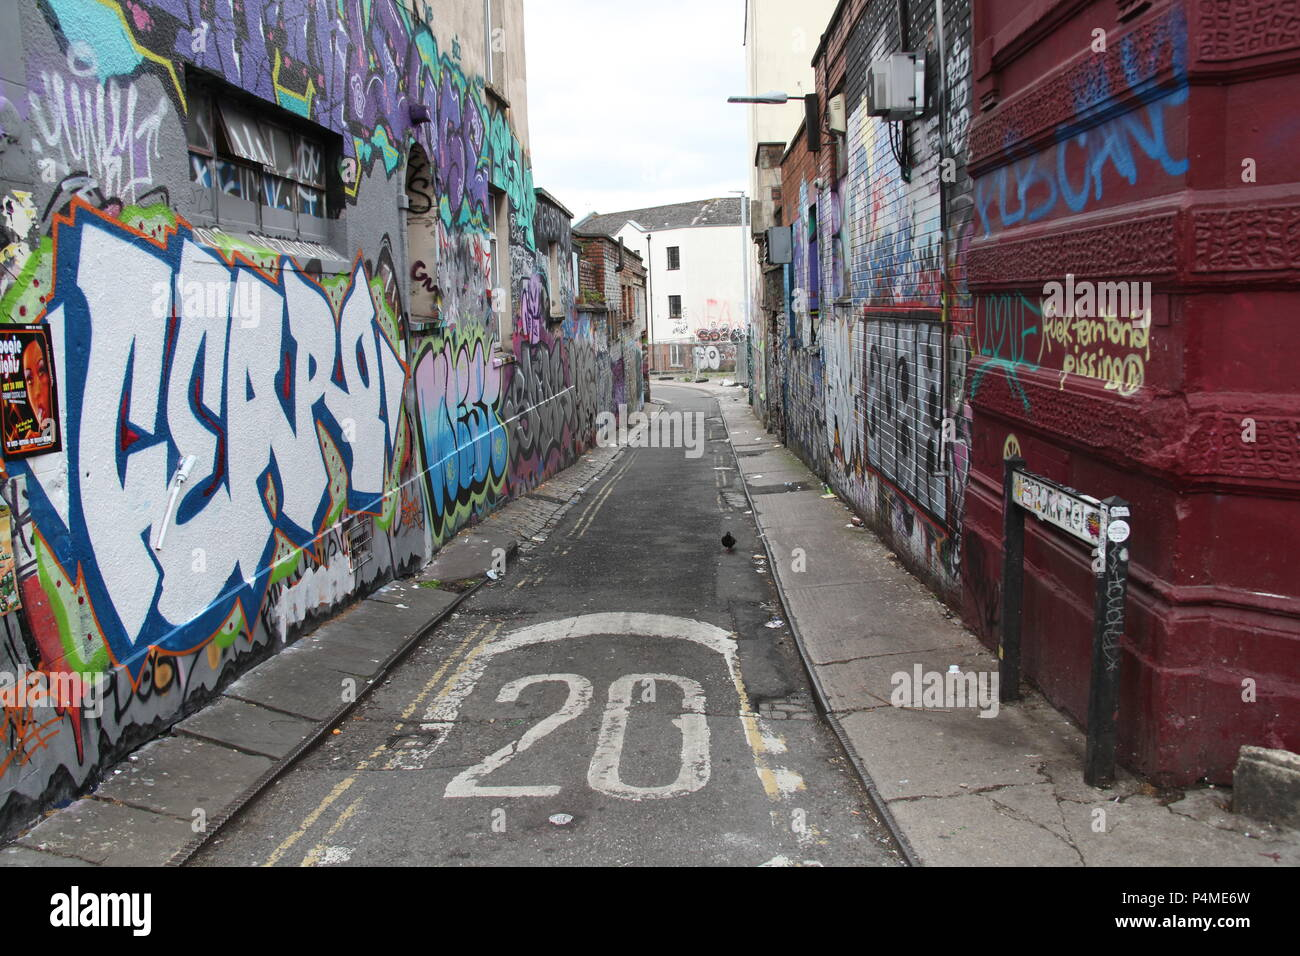 A graffiti covered side street in Stokes Croft, Bristol, England. - Stock Image